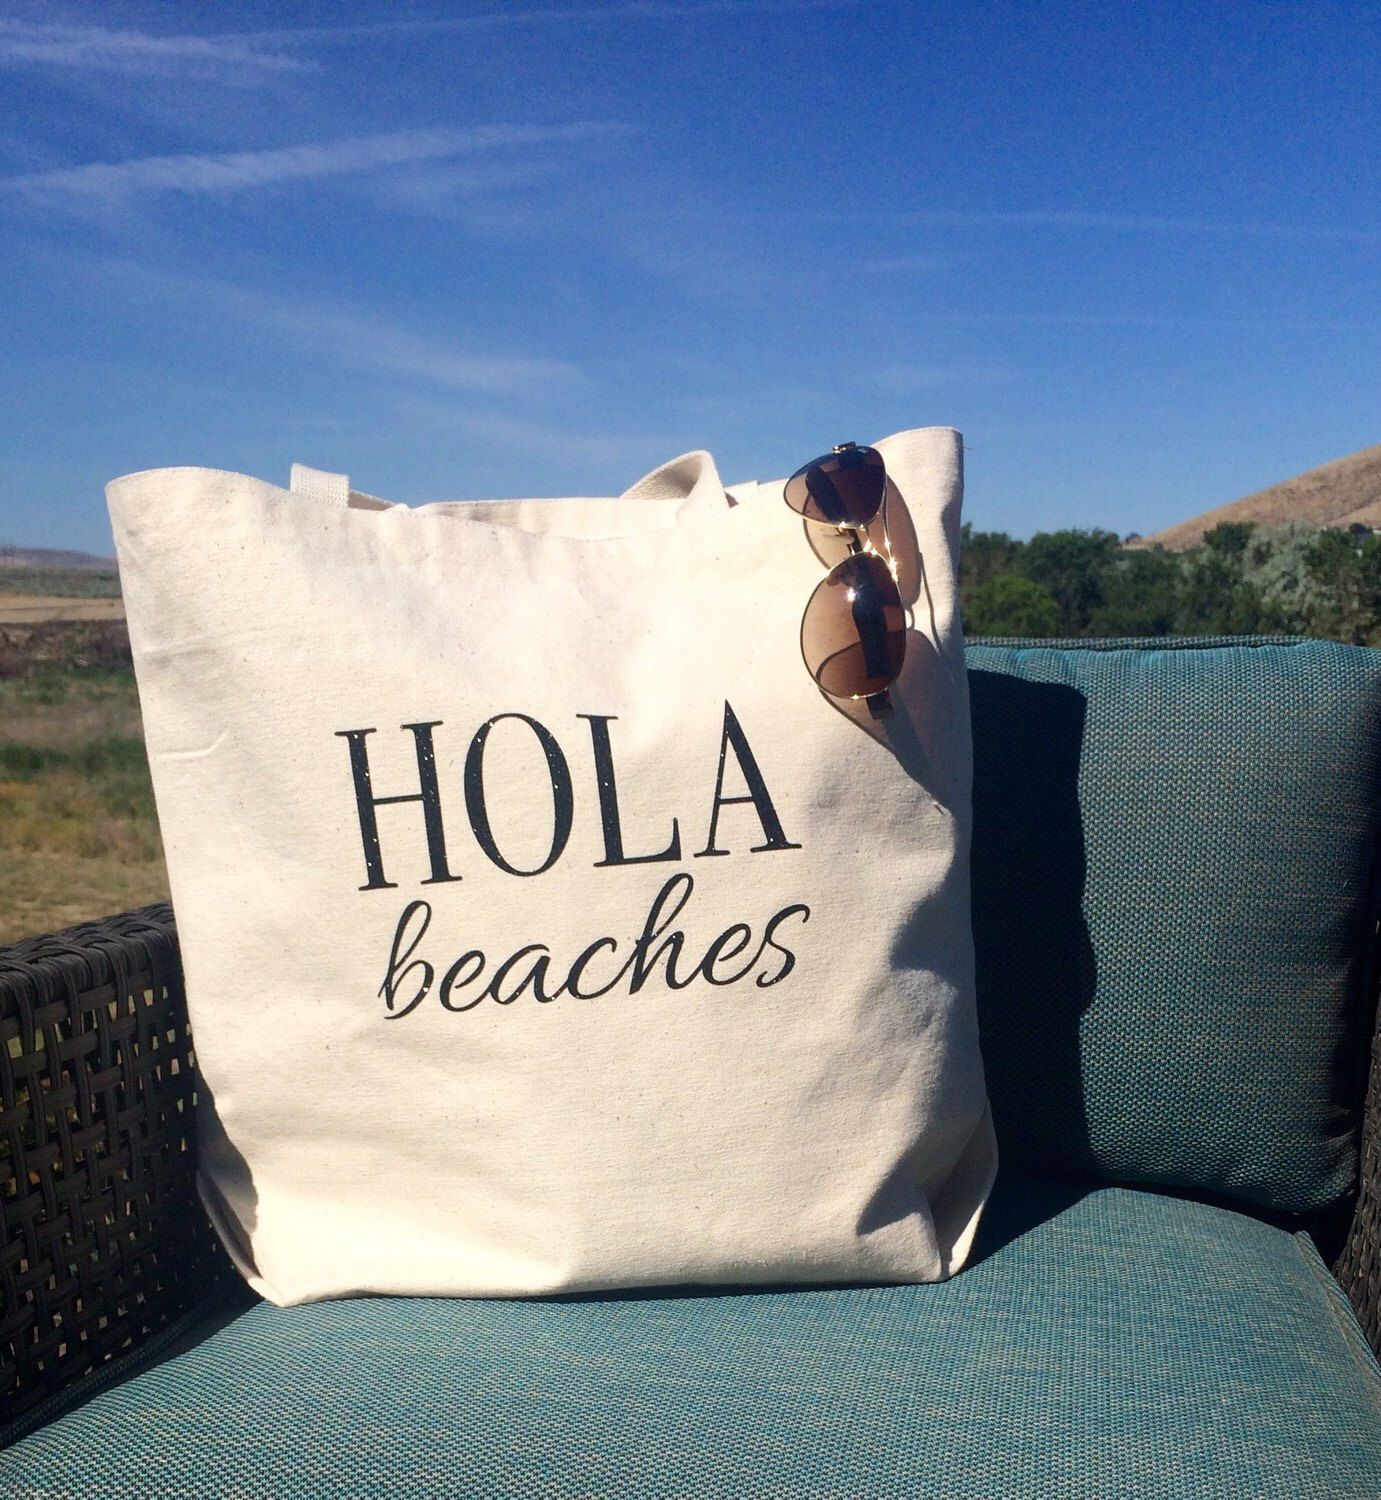 HOLA BEACHES™-Statement Tote Bag-Beach Bag-Vacation Bag ...